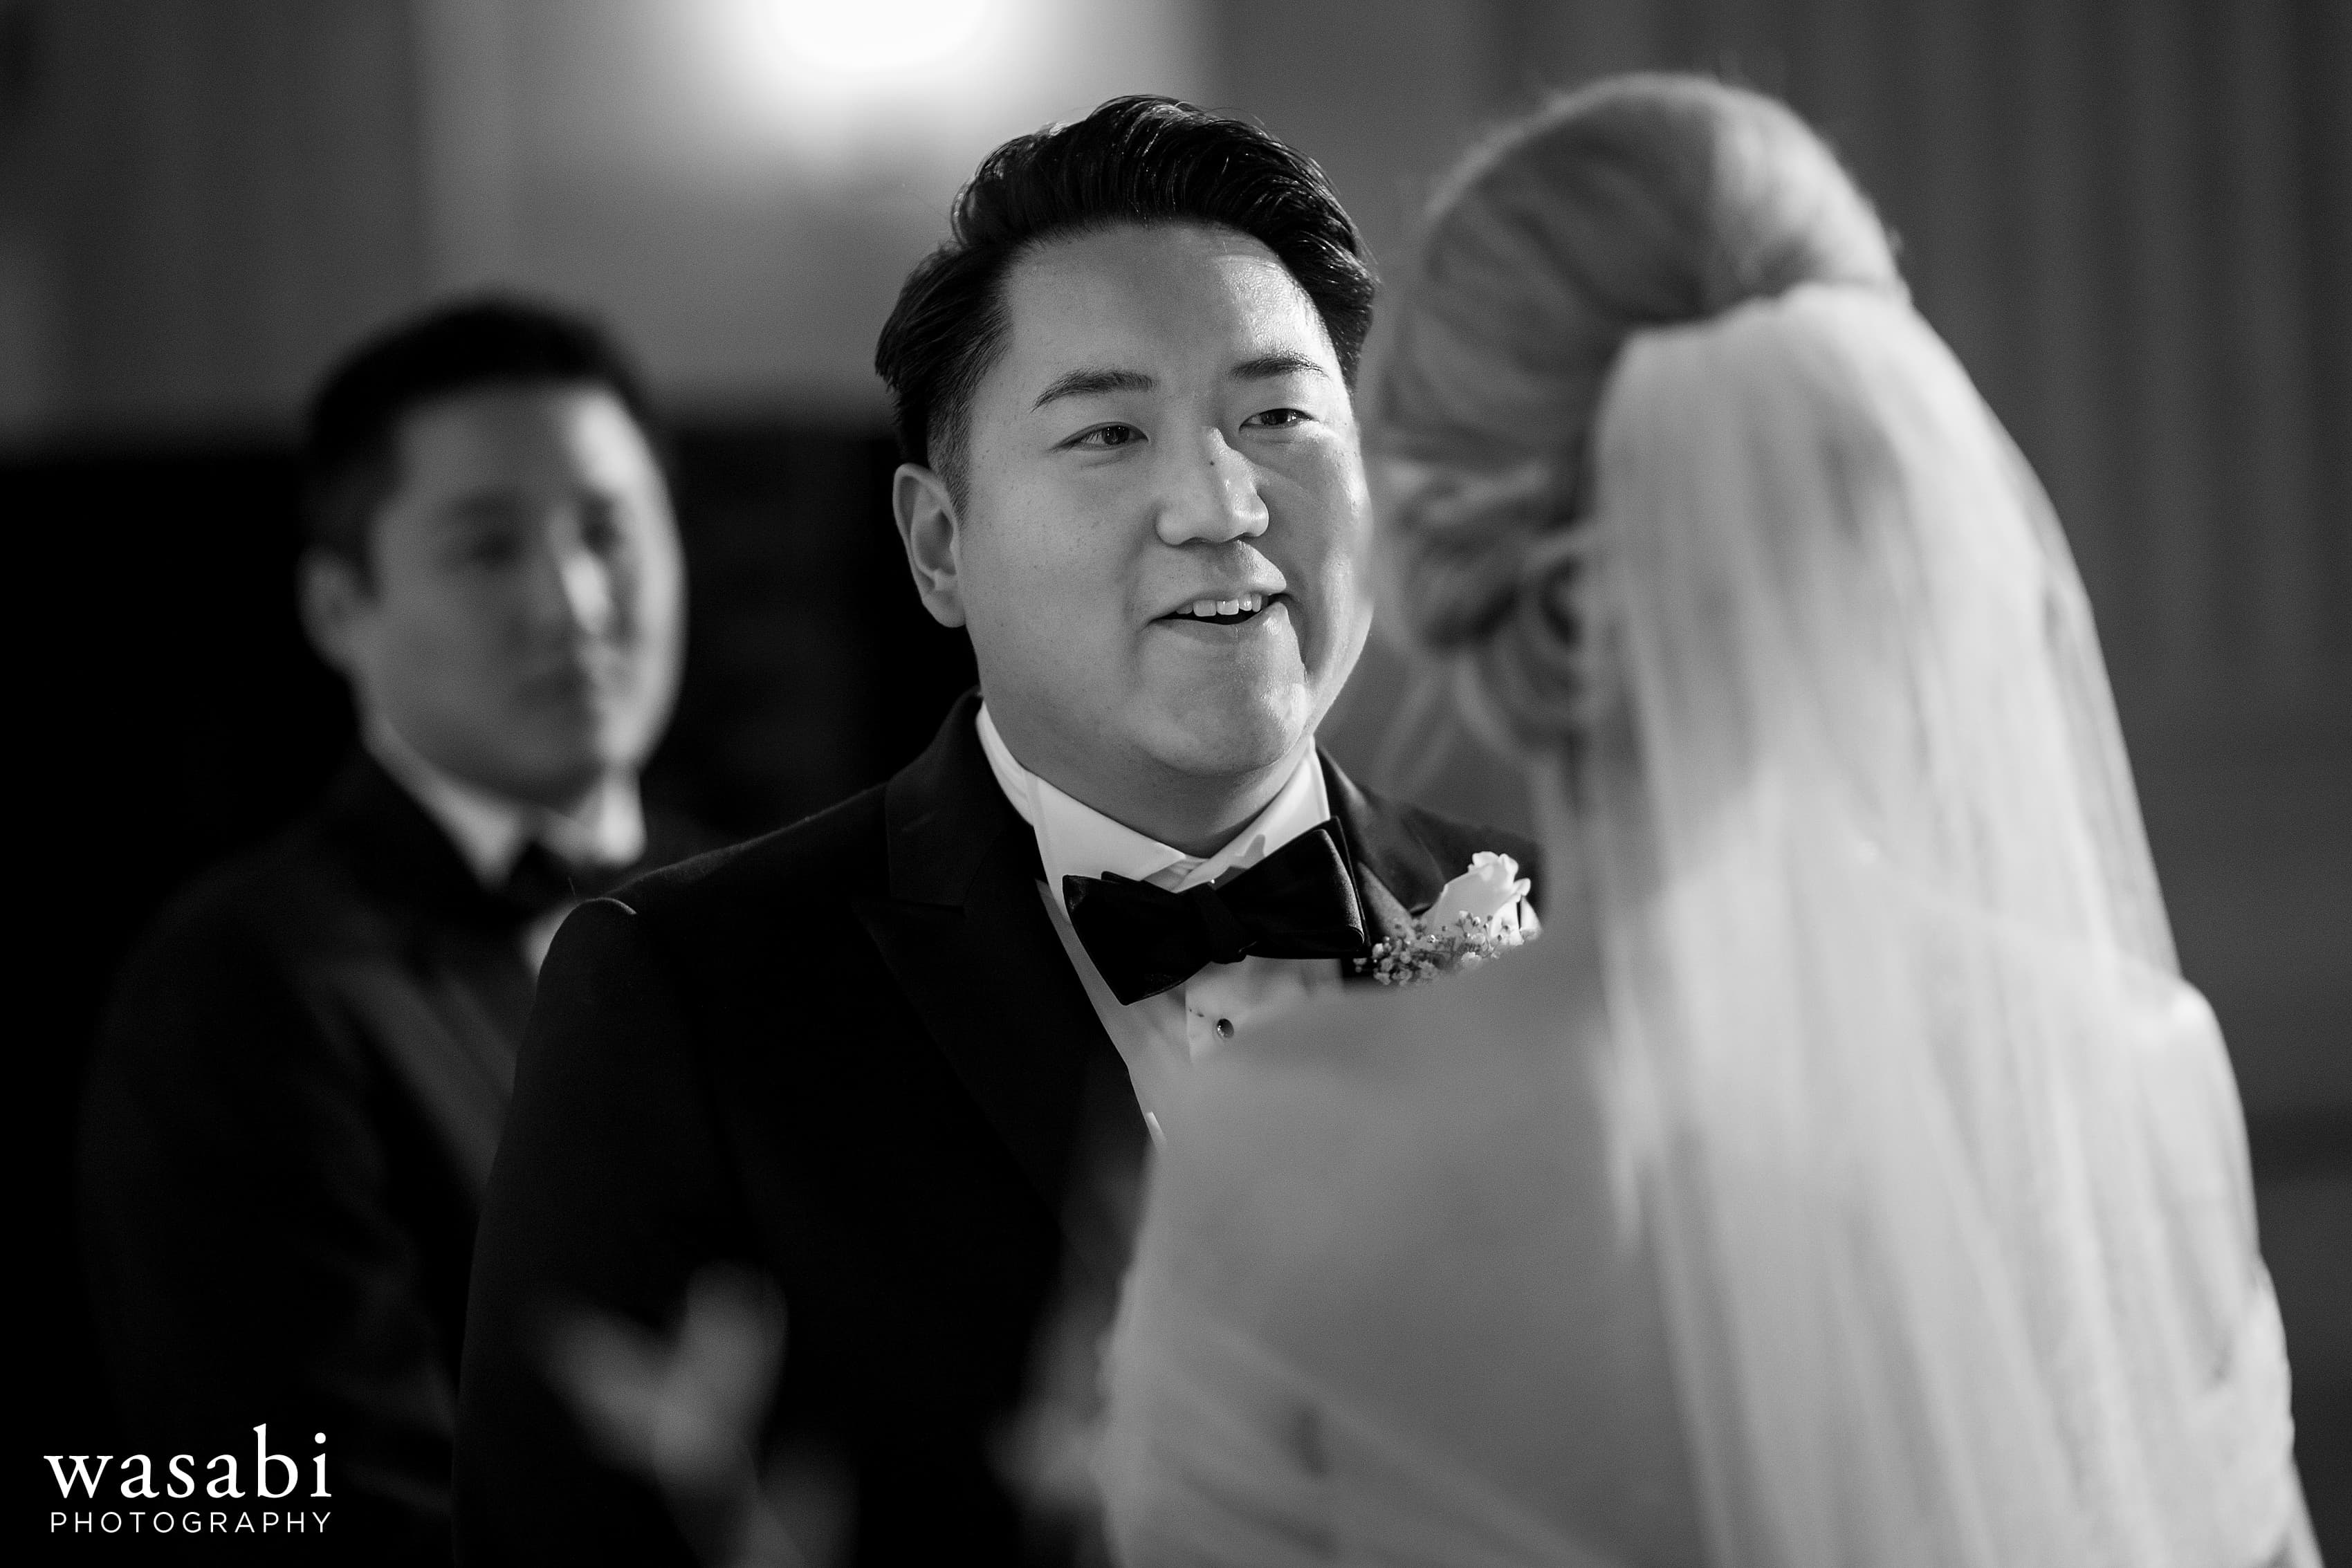 Groom smiles at bride during wedding at Civic Opera House in Chicago